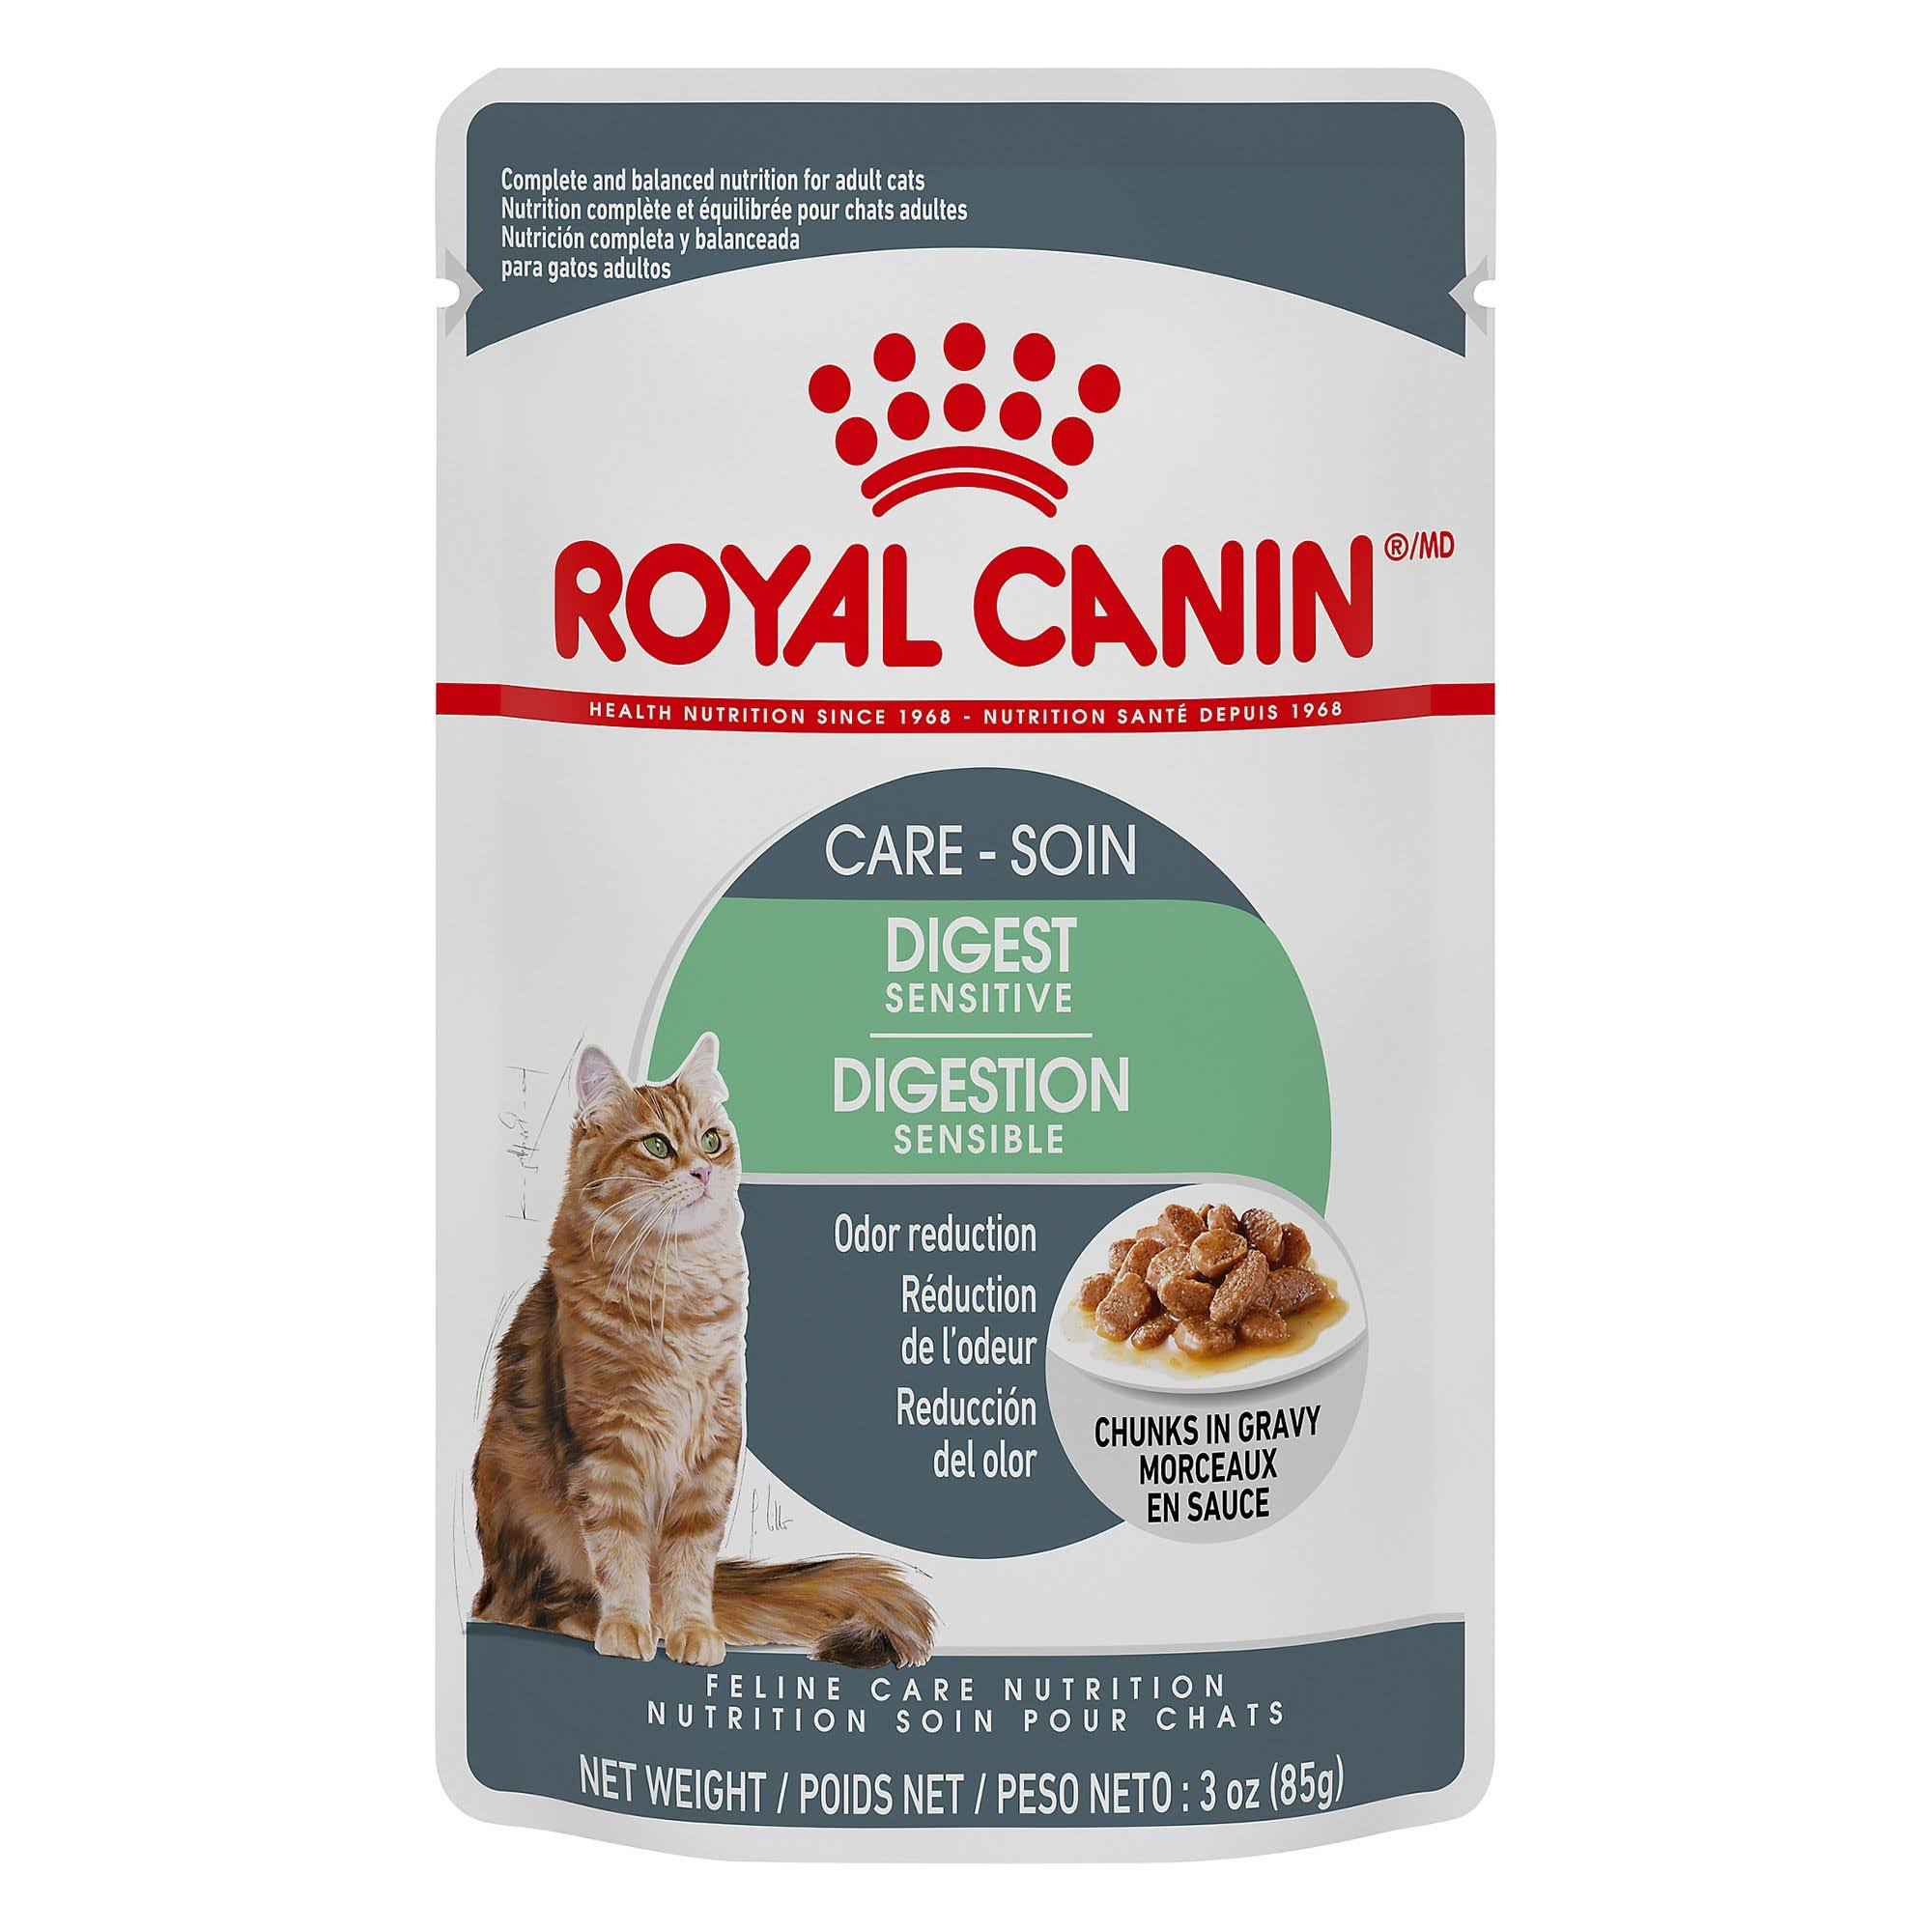 Royal Canin Digest Sensitive Chunks in Gravy for Adult Cats - 3 oz